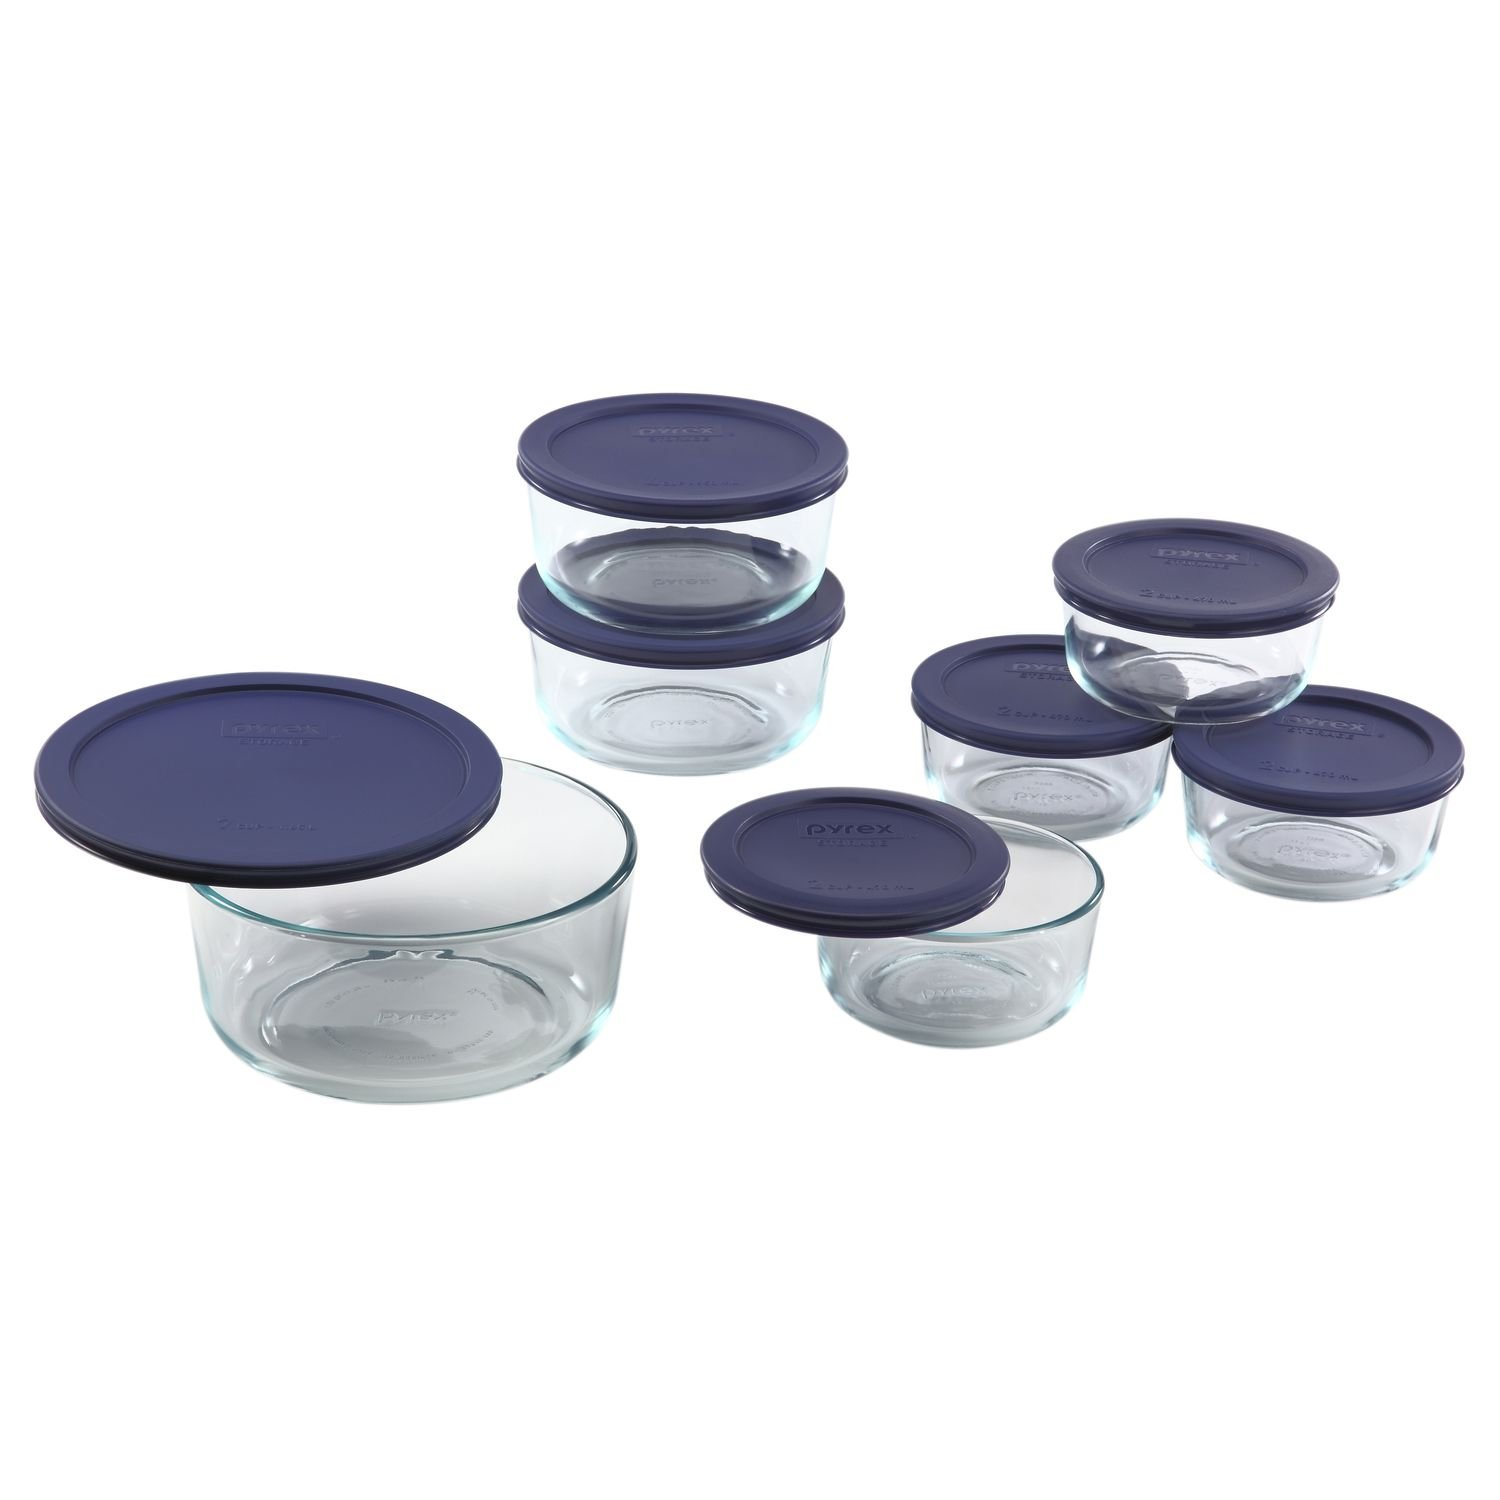 Pyrex Simply Store 14-Piece Round Glass Food Storage Set, Blue